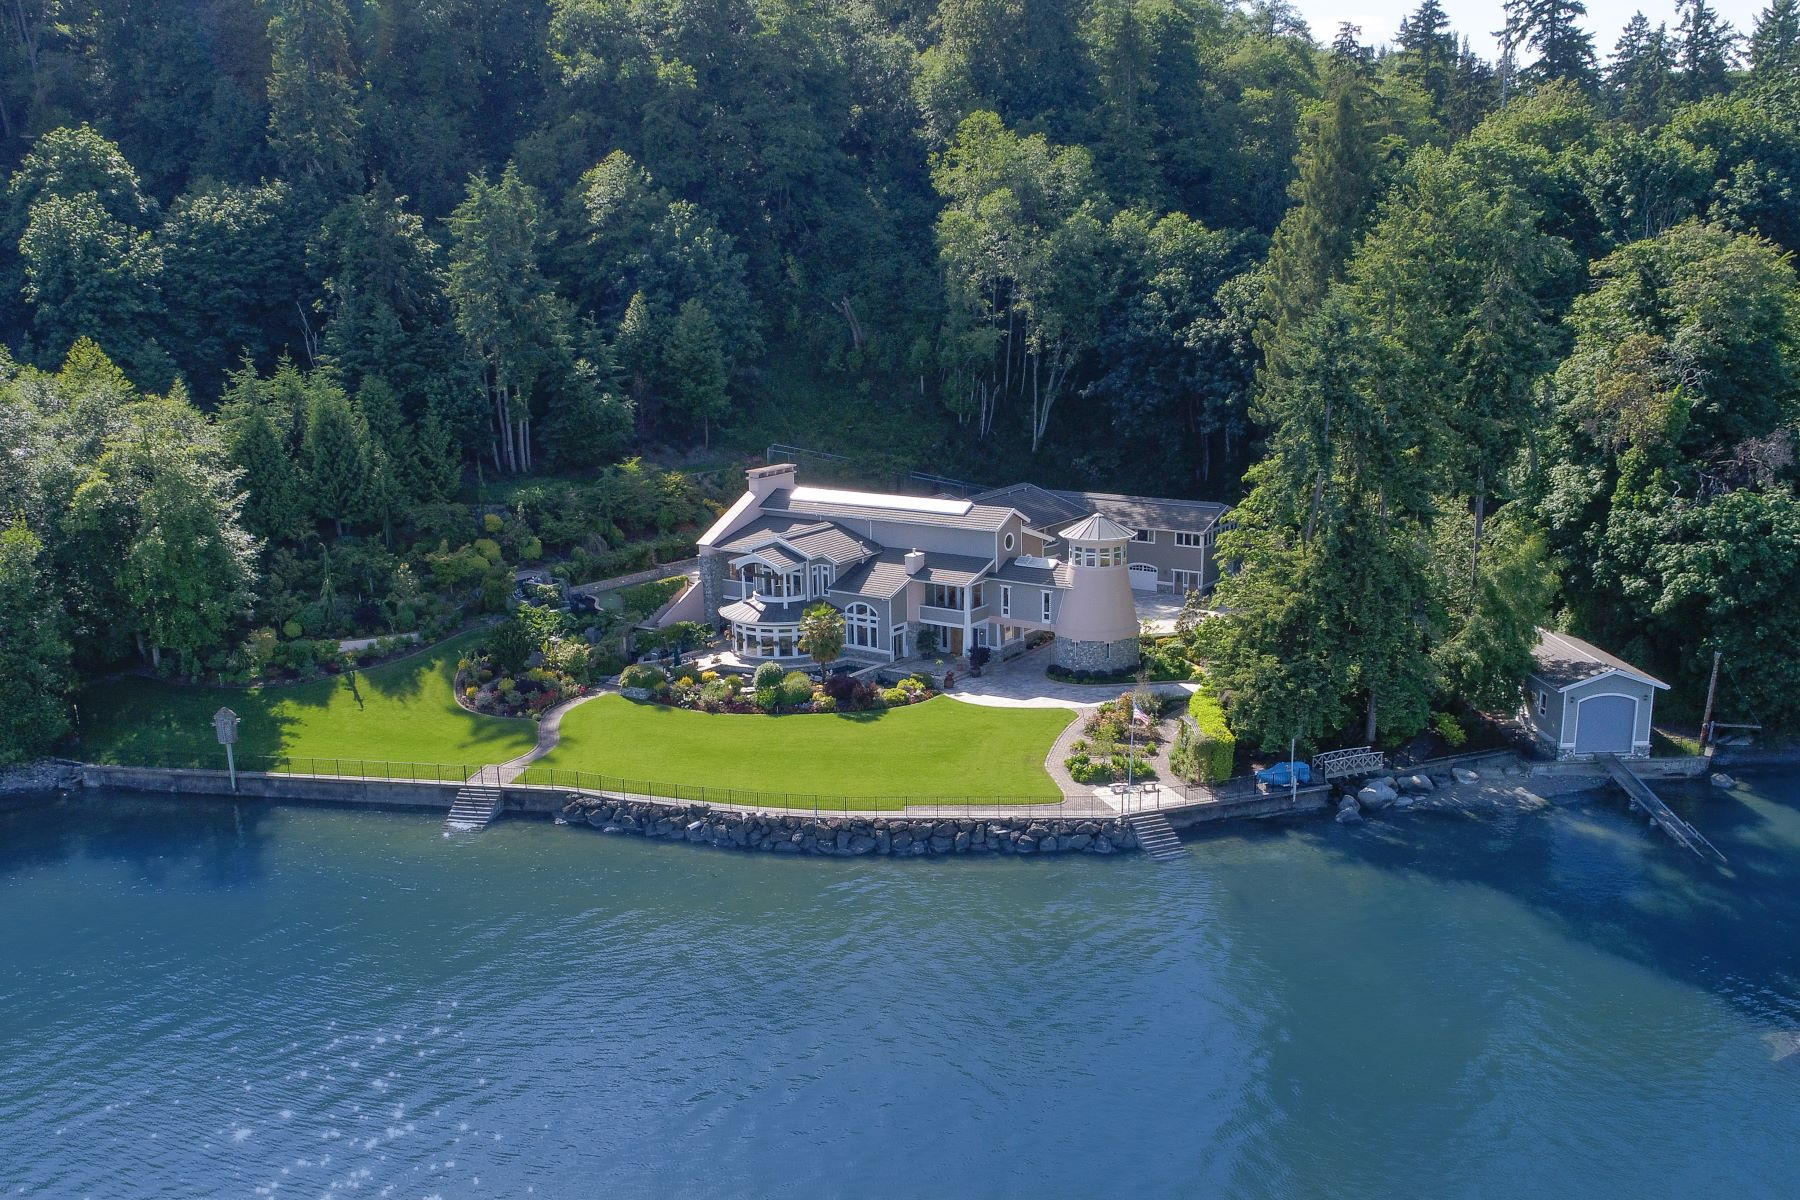 Casa Unifamiliar por un Venta en Private Palatial Waterfront 8415 SW Soper Road Vashon, Washington 98070 Estados Unidos